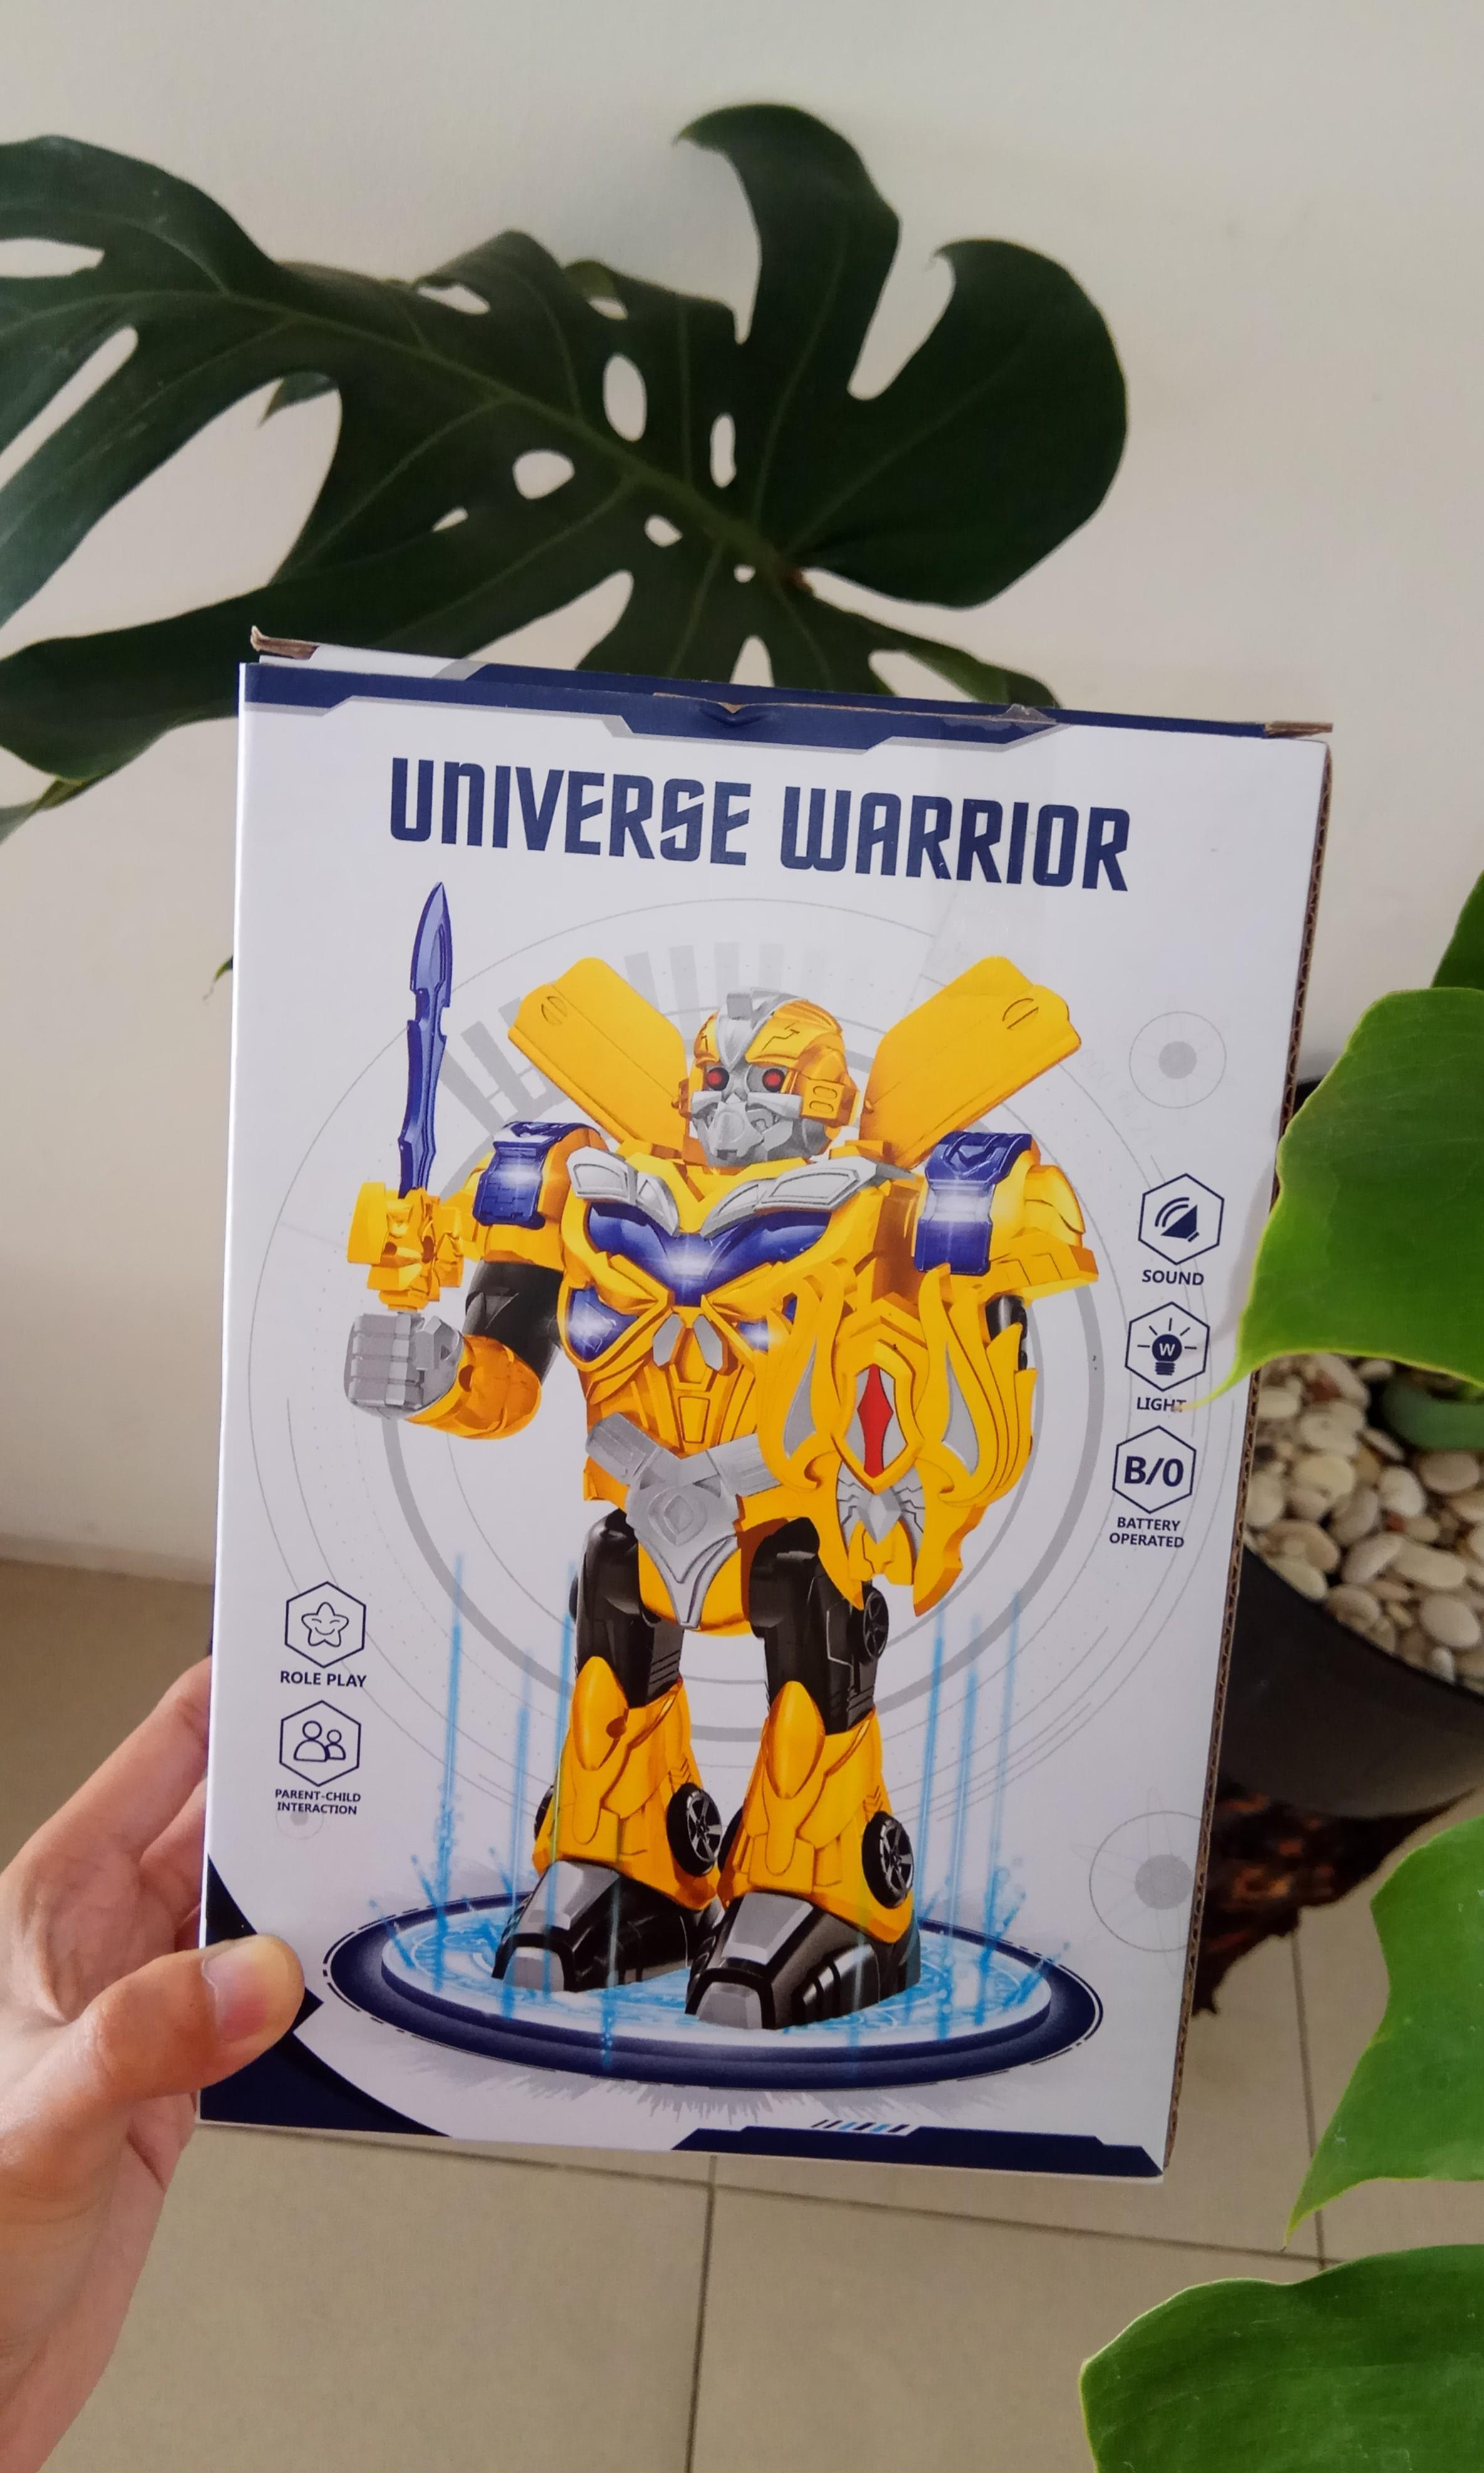 Universe Warrior Robot War